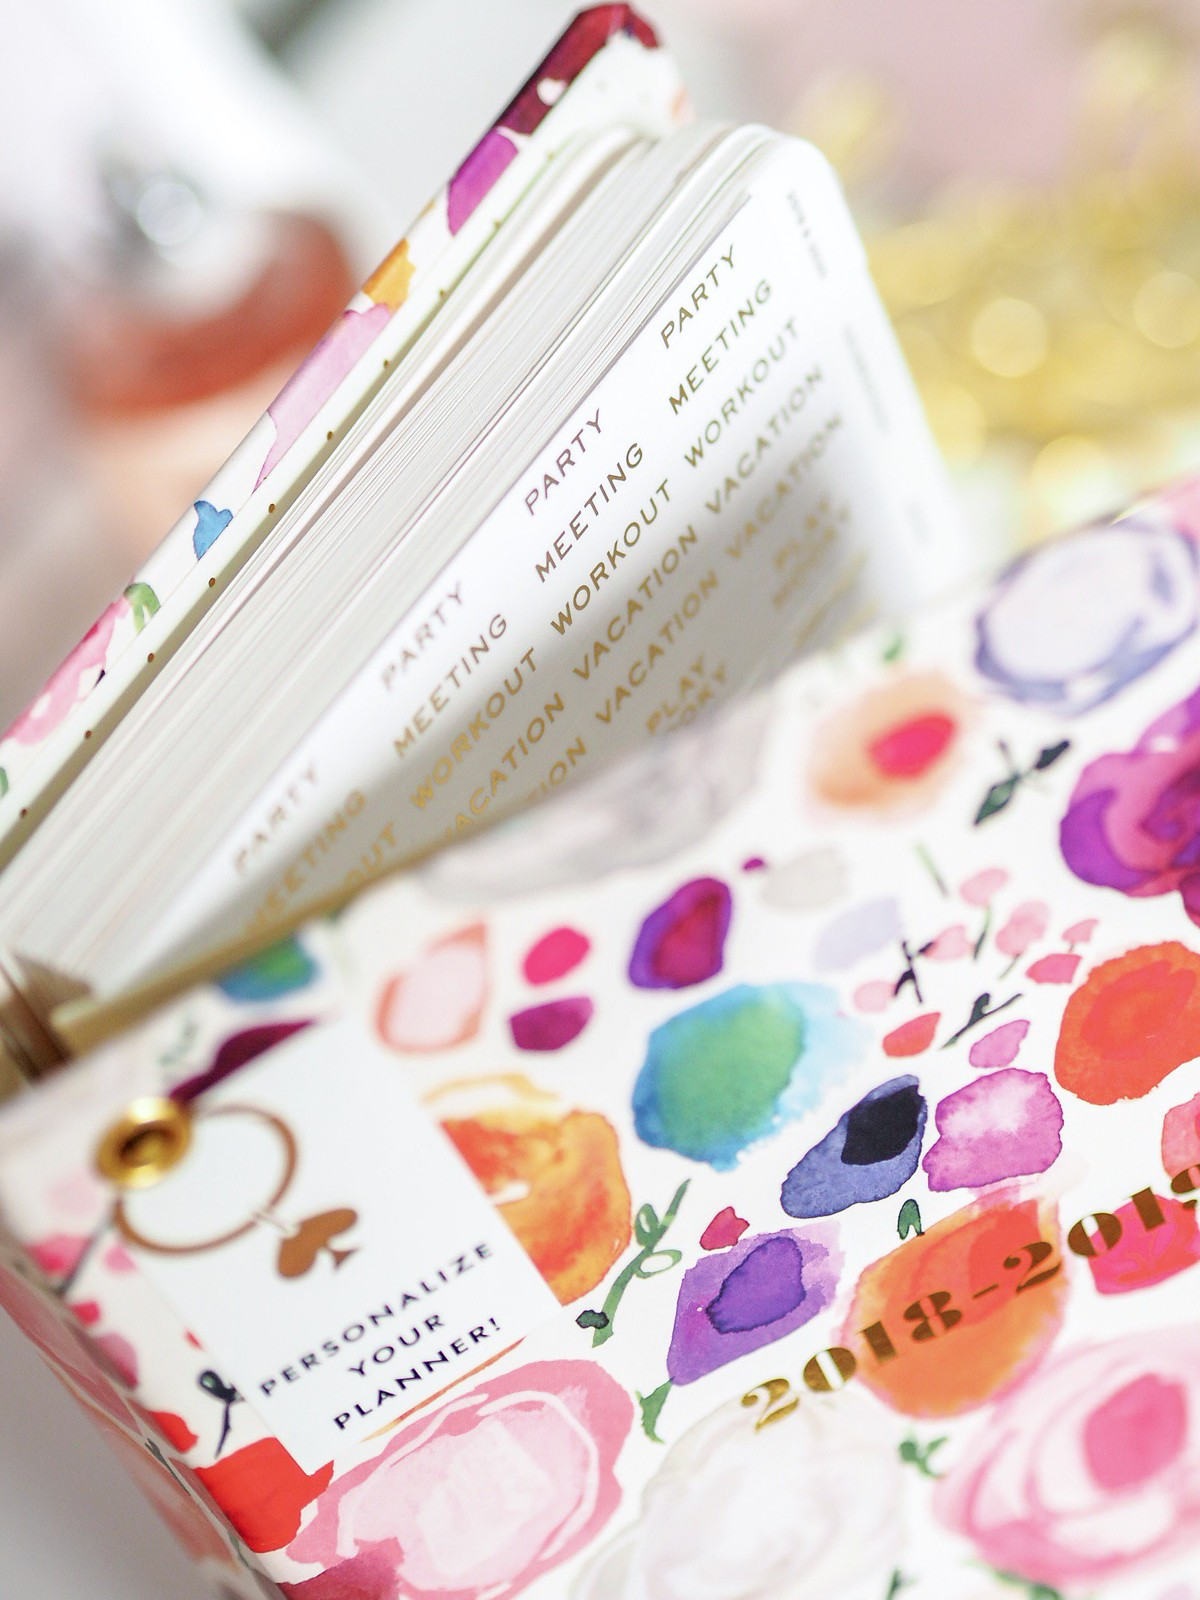 Kate Spade planner floral stickers